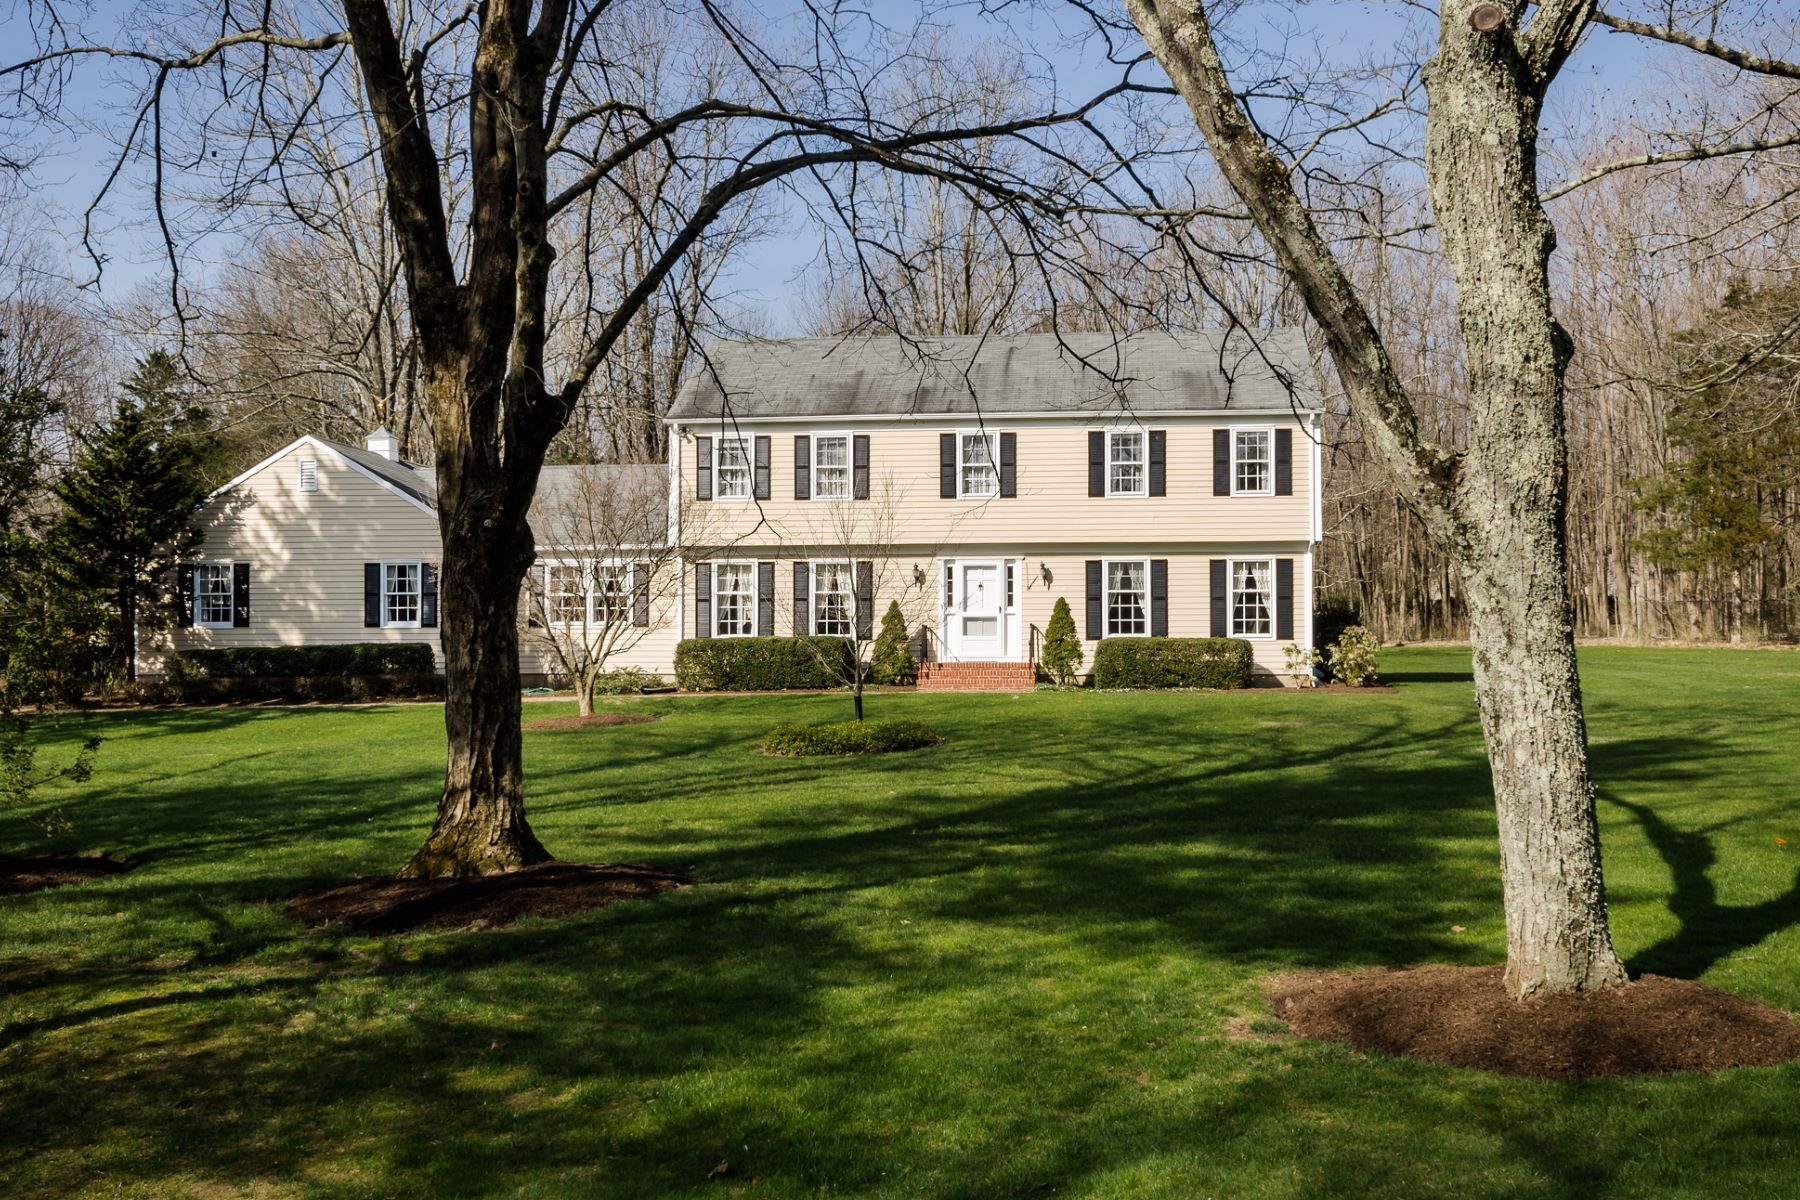 Maison unifamiliale pour l Vente à Superb Neighborhood, Splendid Yard, Solid House 108 Greenway Terrace Princeton, New Jersey, 08540 États-Unis